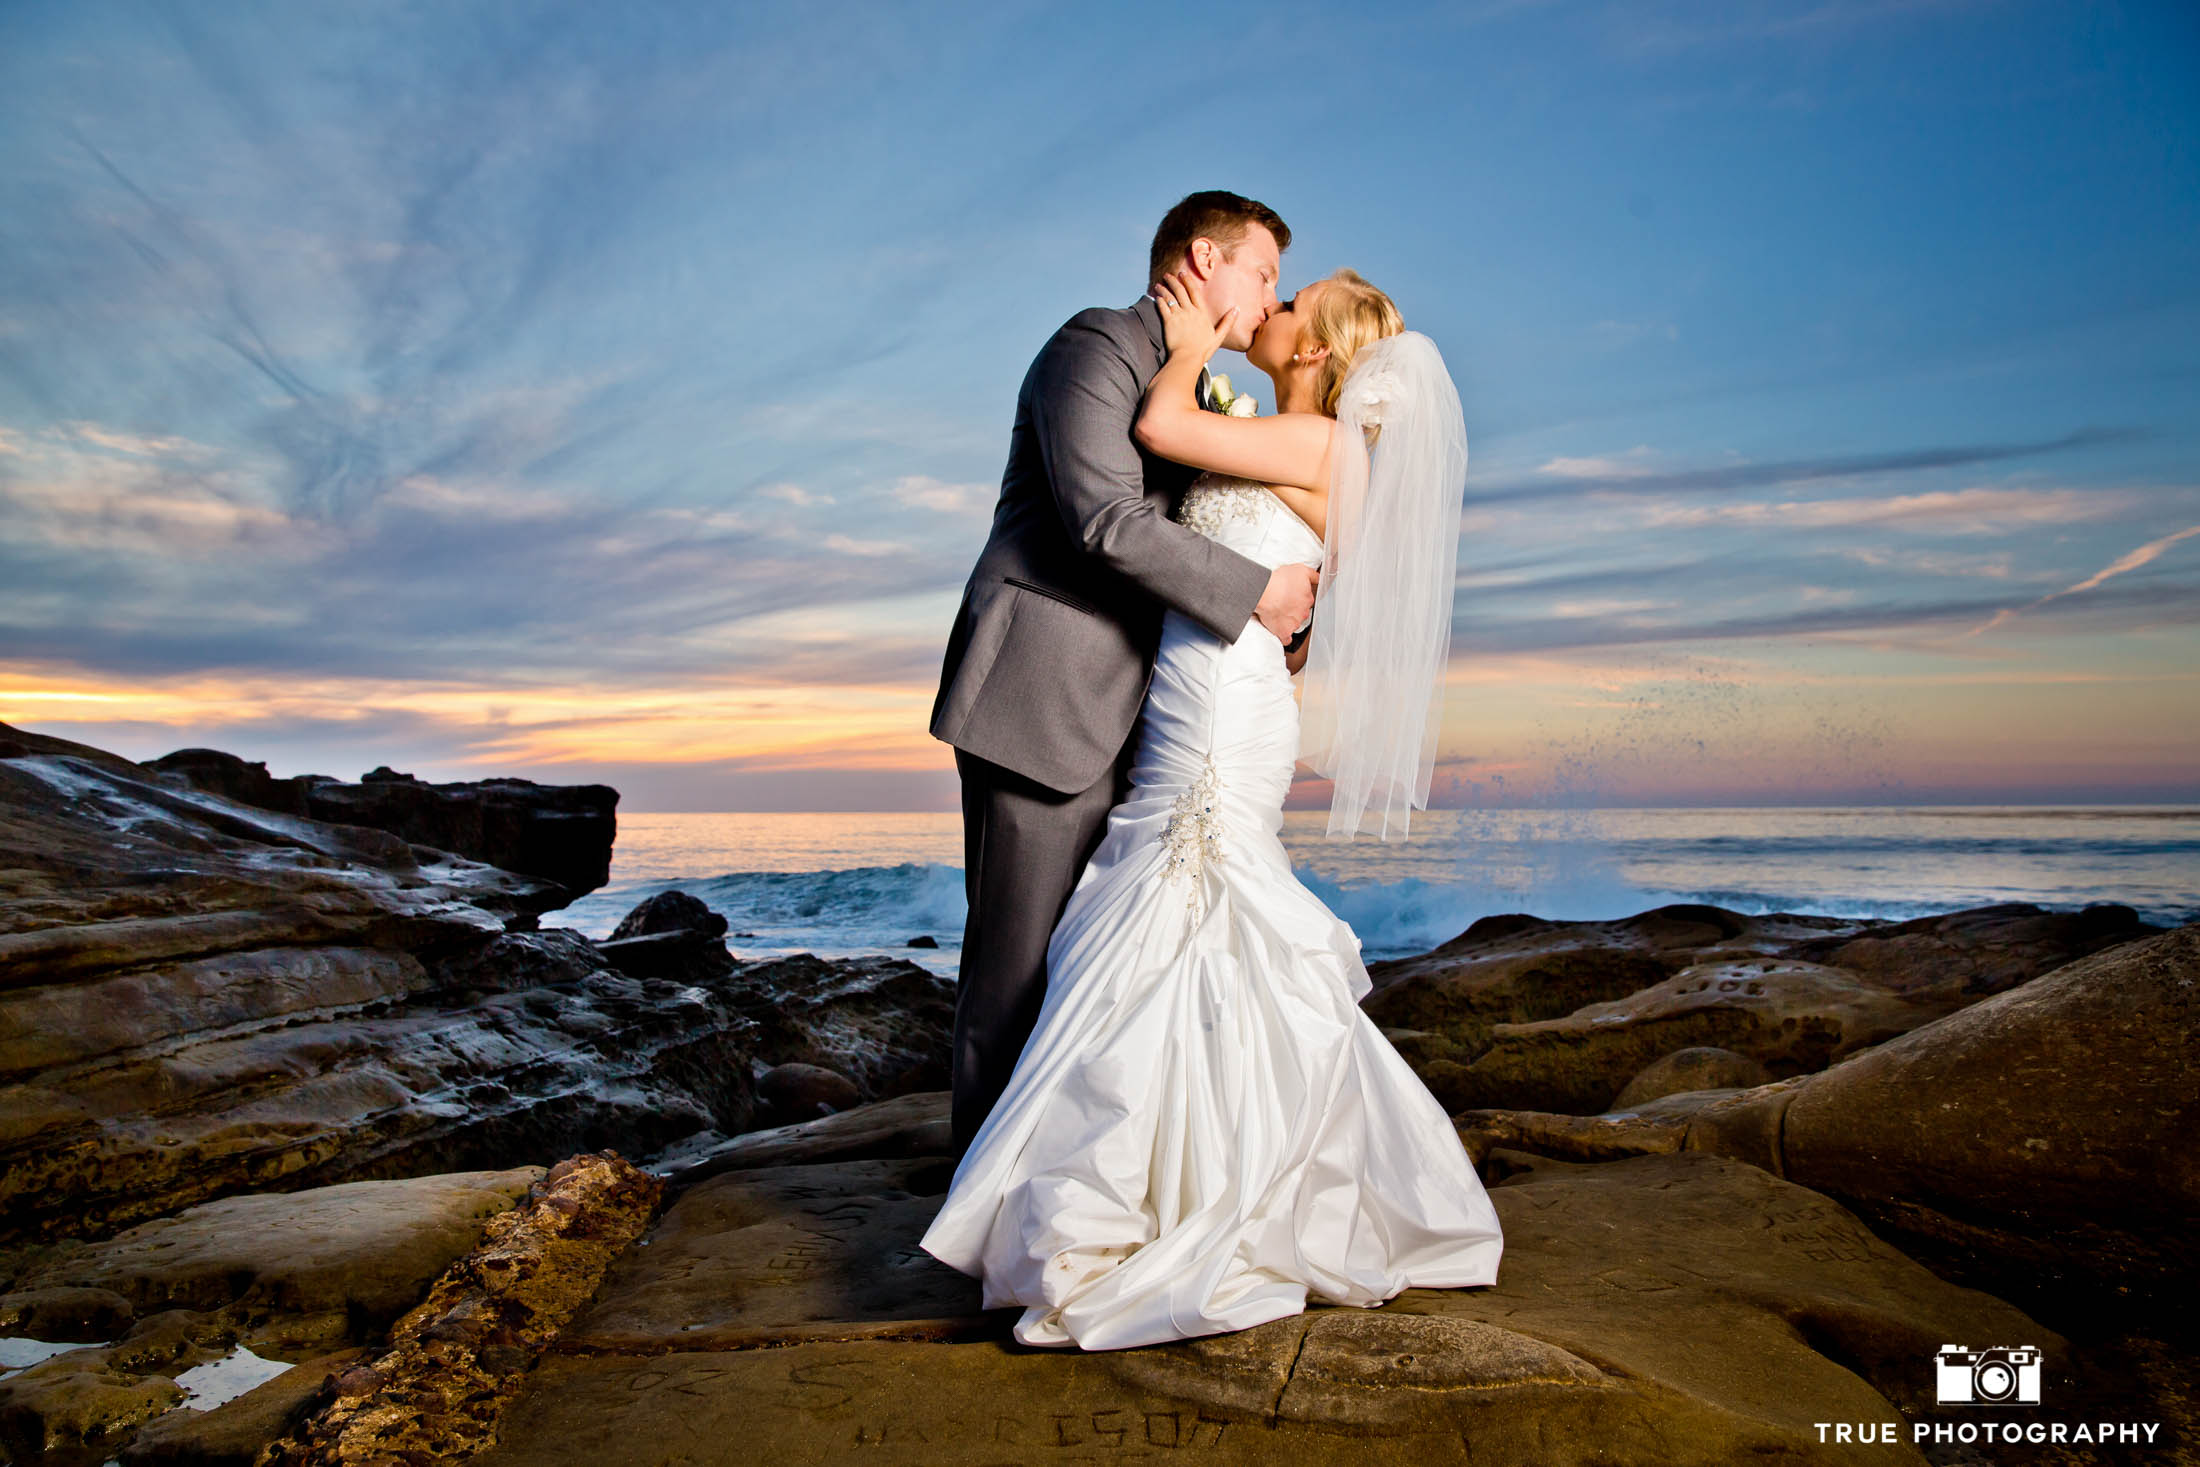 San Diego sunset with newlyweds taking night shot portraits